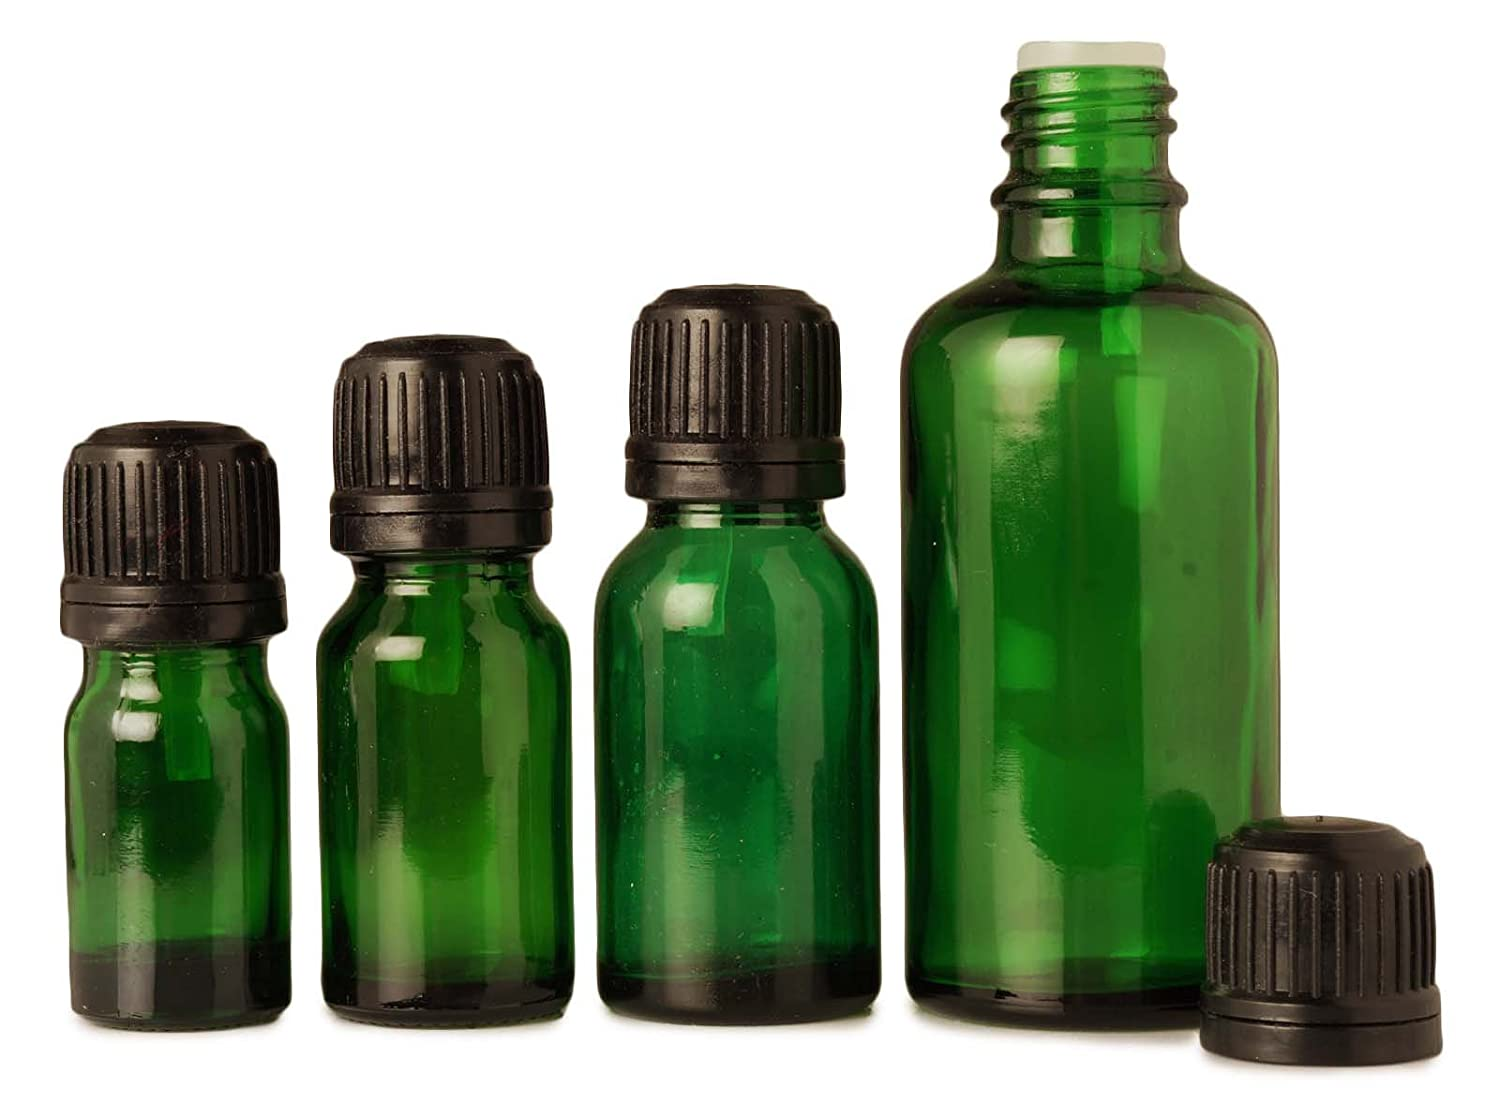 Lot of 100 x 5 ml Green Glass Essential Empty Bottles With Black Tamper Evident Cap For Aromatherapy Oils MT Bottles & Jars